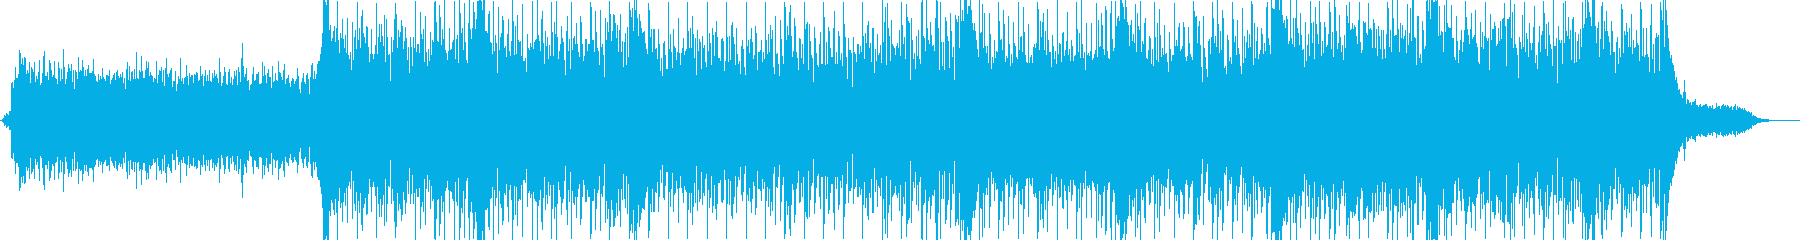 Strings BGM with a gorgeous image's reproduced waveform